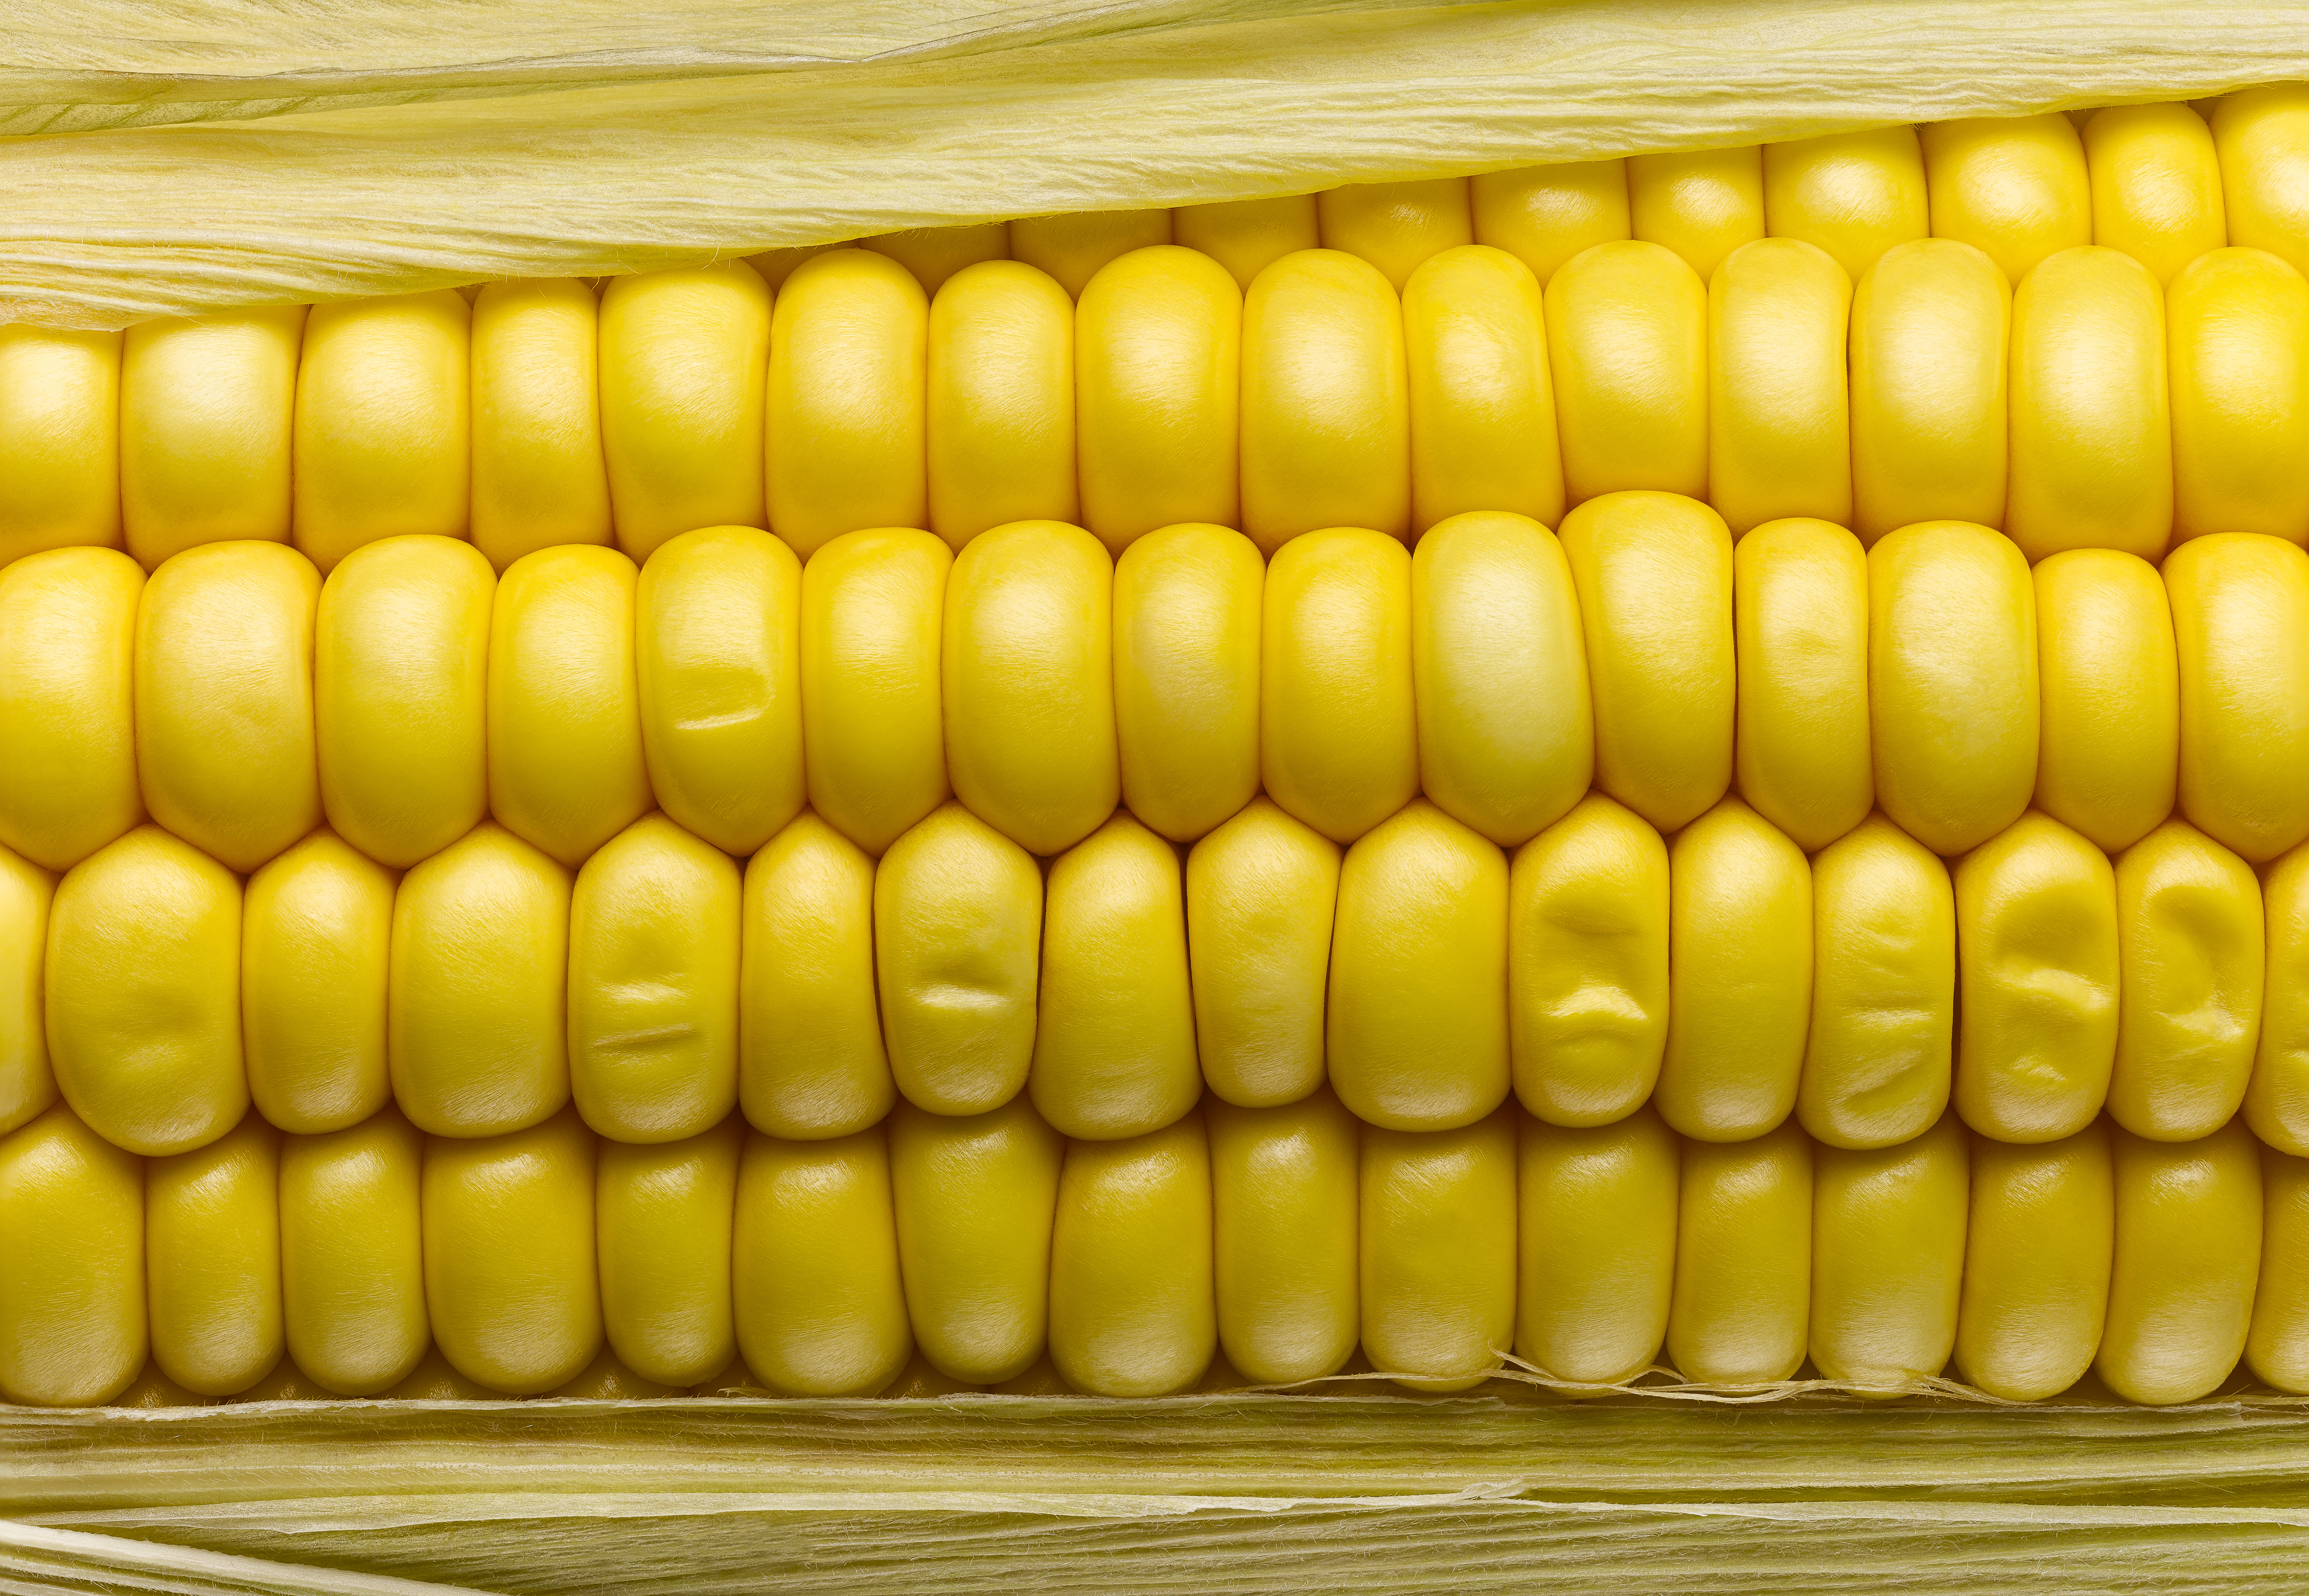 May is the month for the emergence of great tasting corn and other traditional summer grilling vegetables.